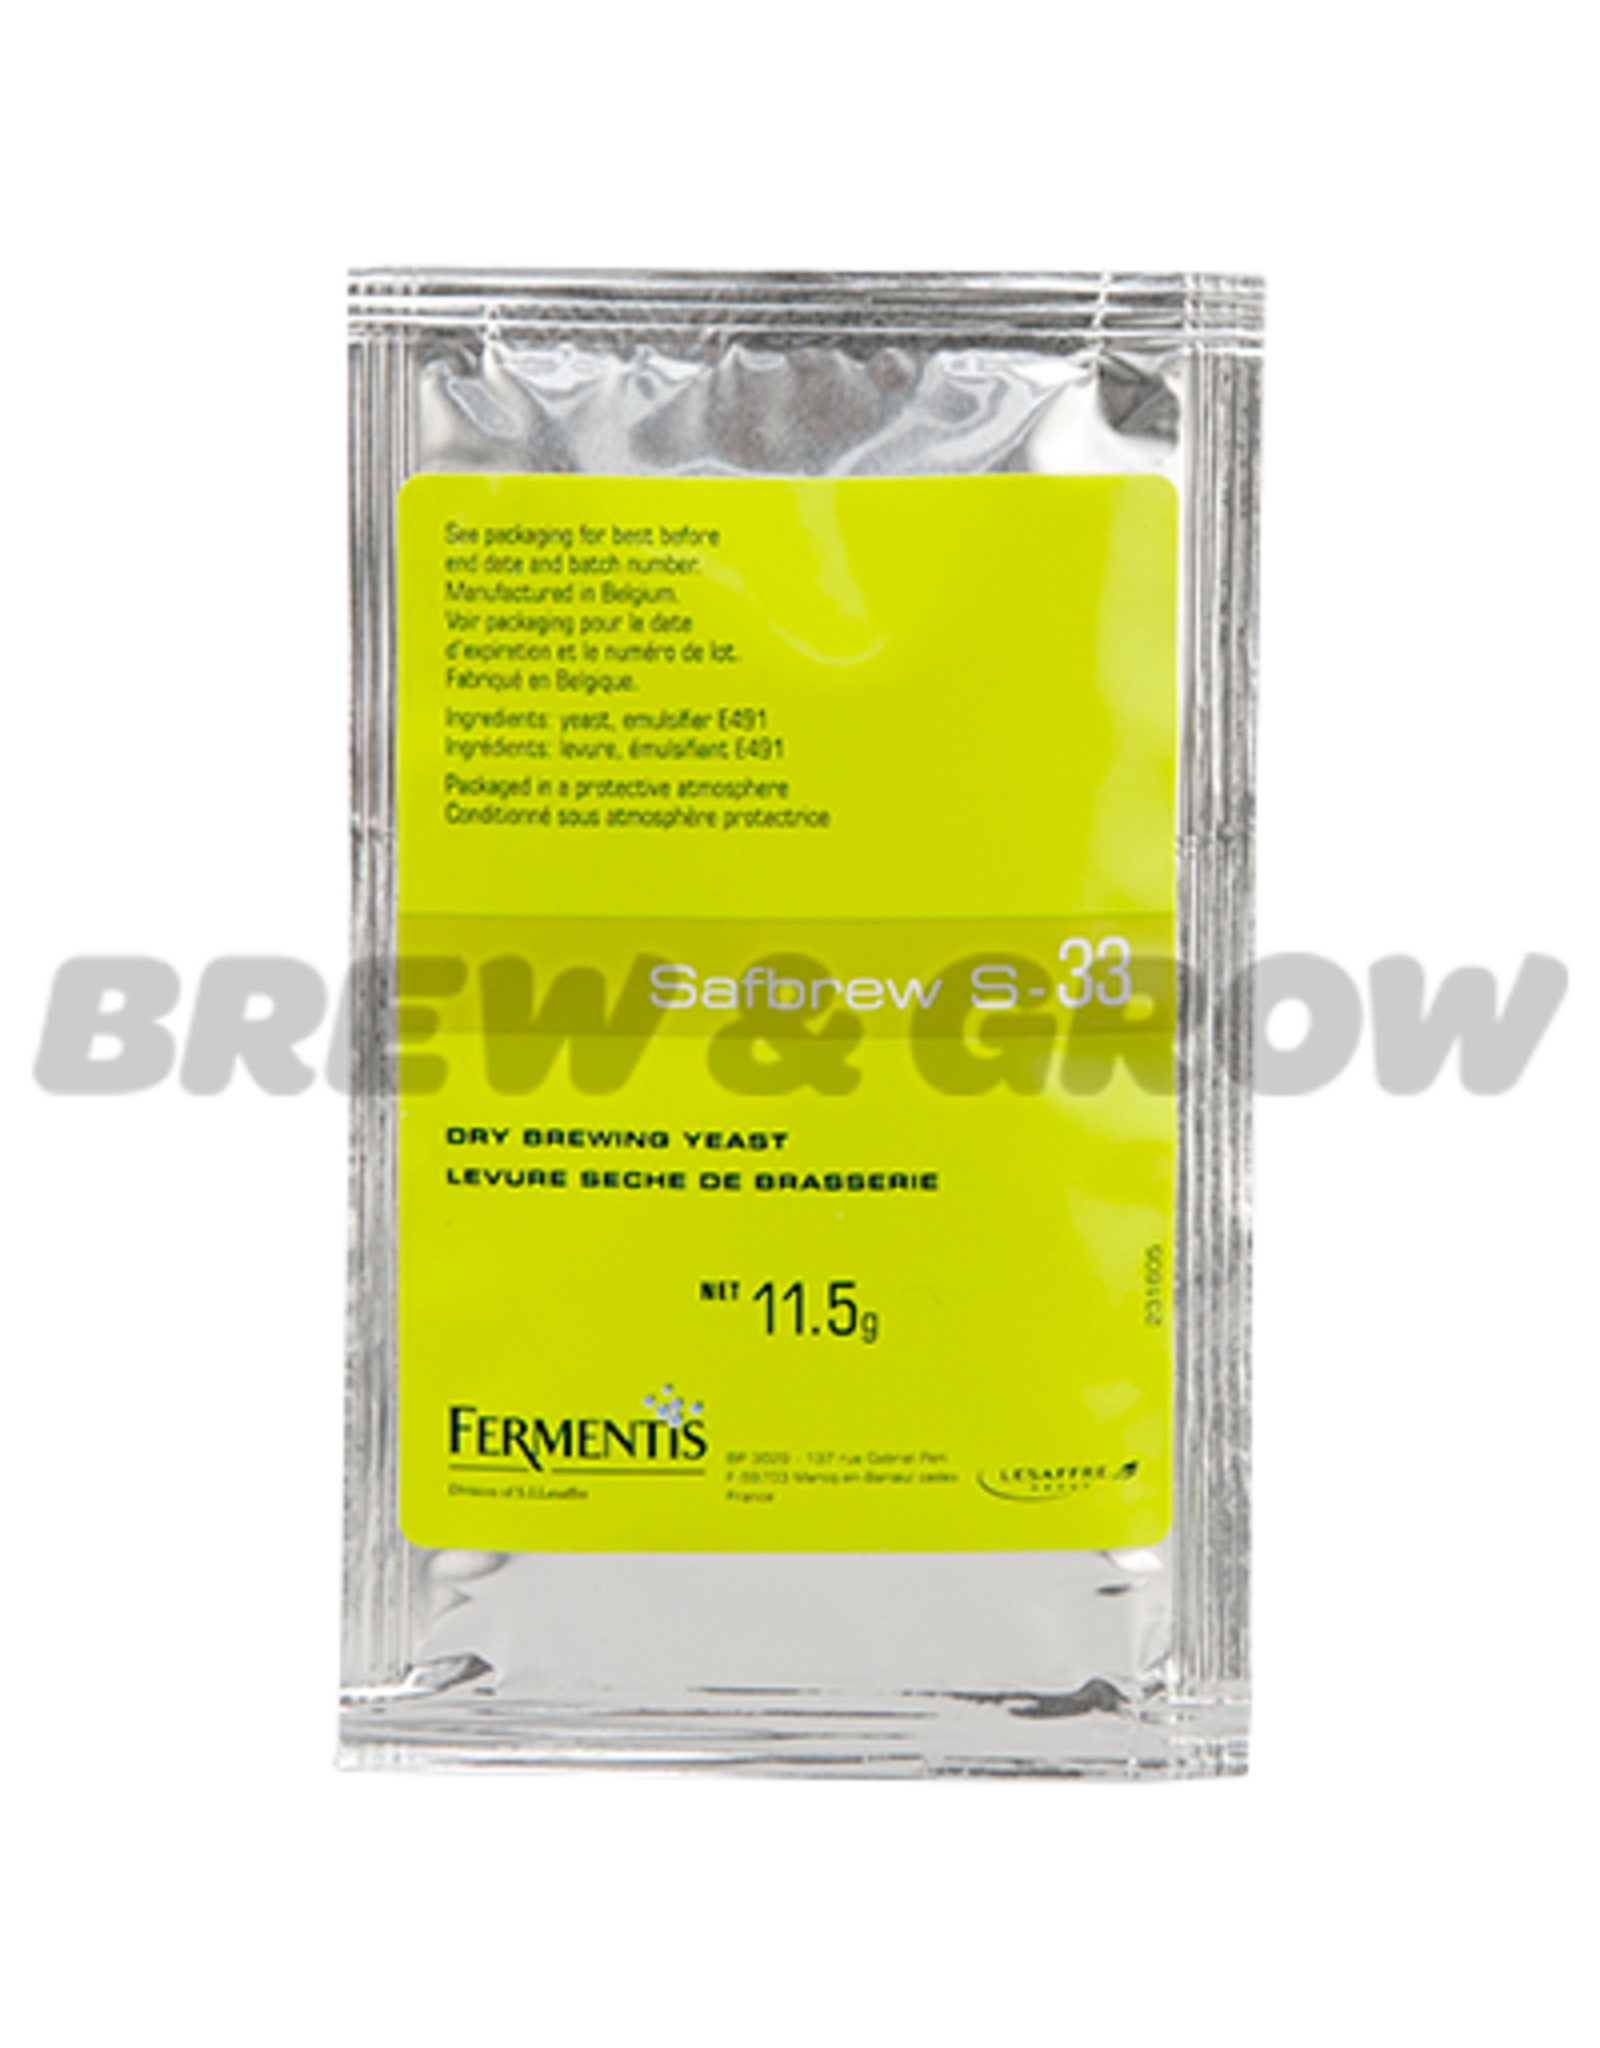 Safbrew S-33 Dry Brewing Yeast